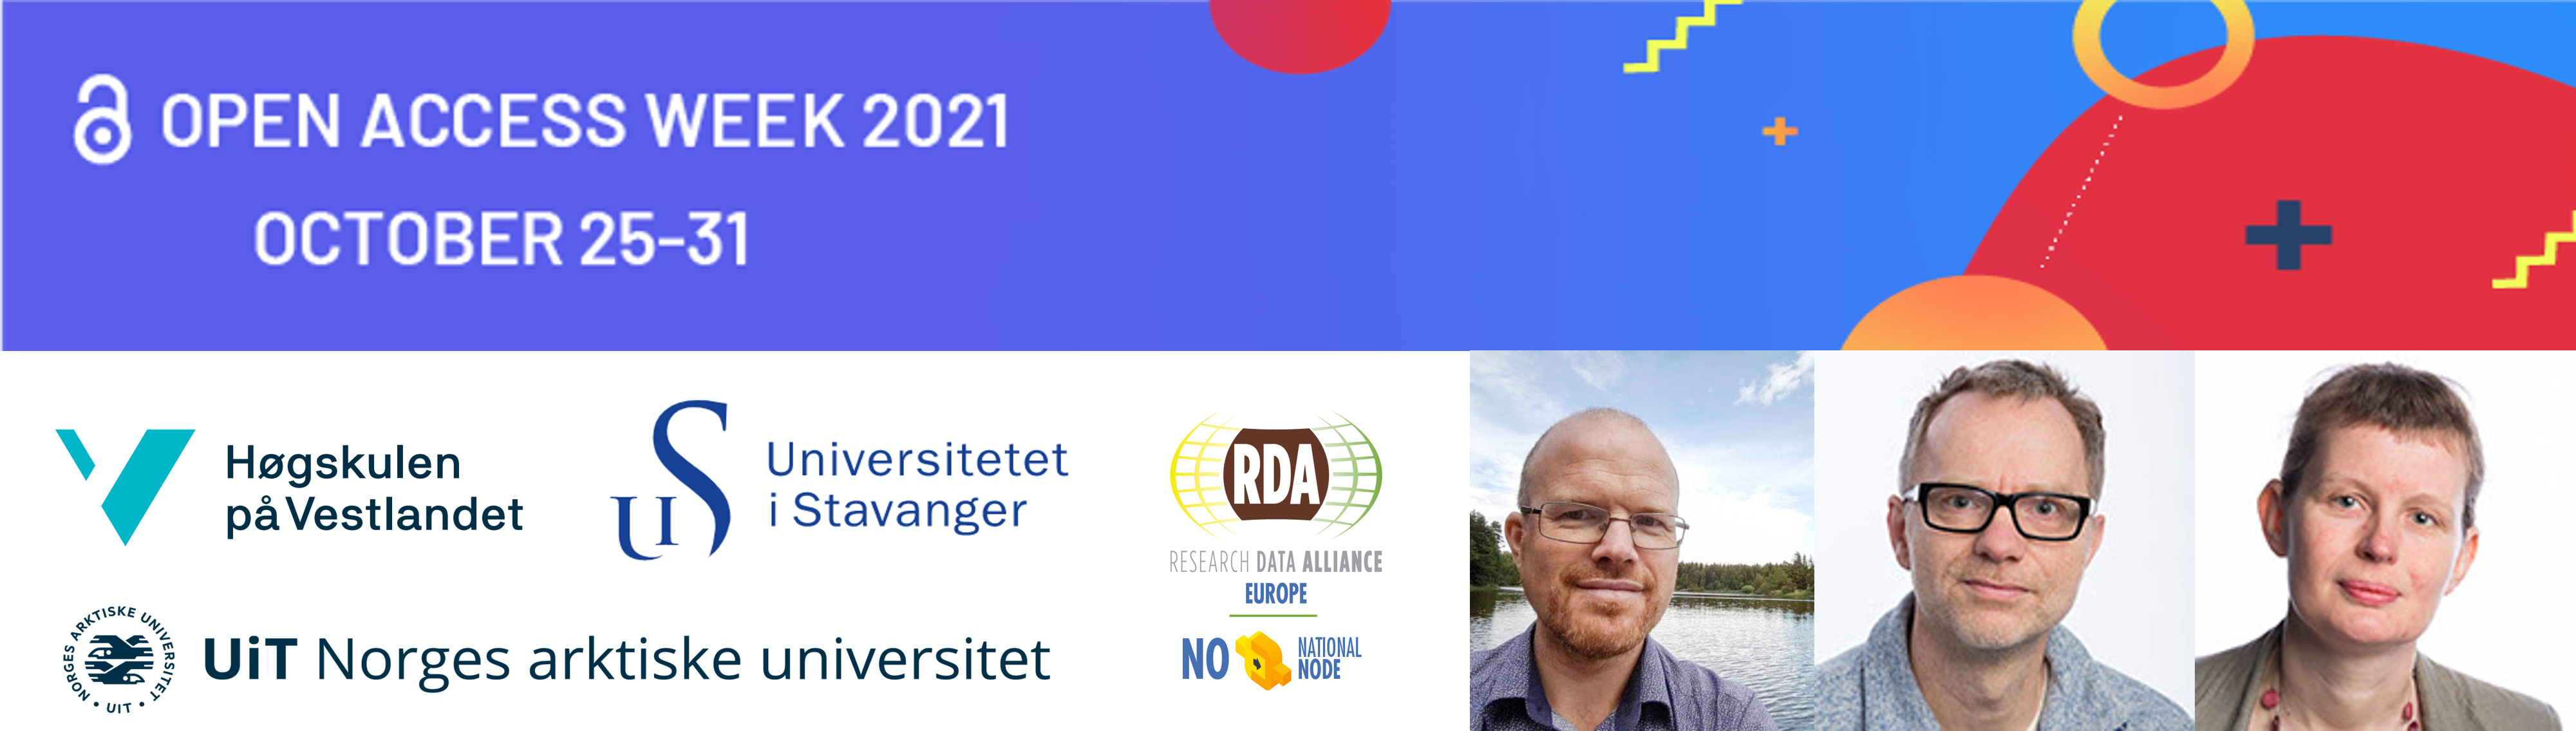 Webinar: Diamonds are forever. On the benefits and challenges of Diamond Open Access publishing. With Per Pippin Aspaas, Jeroen M. Bosman & Bianca Kramer.